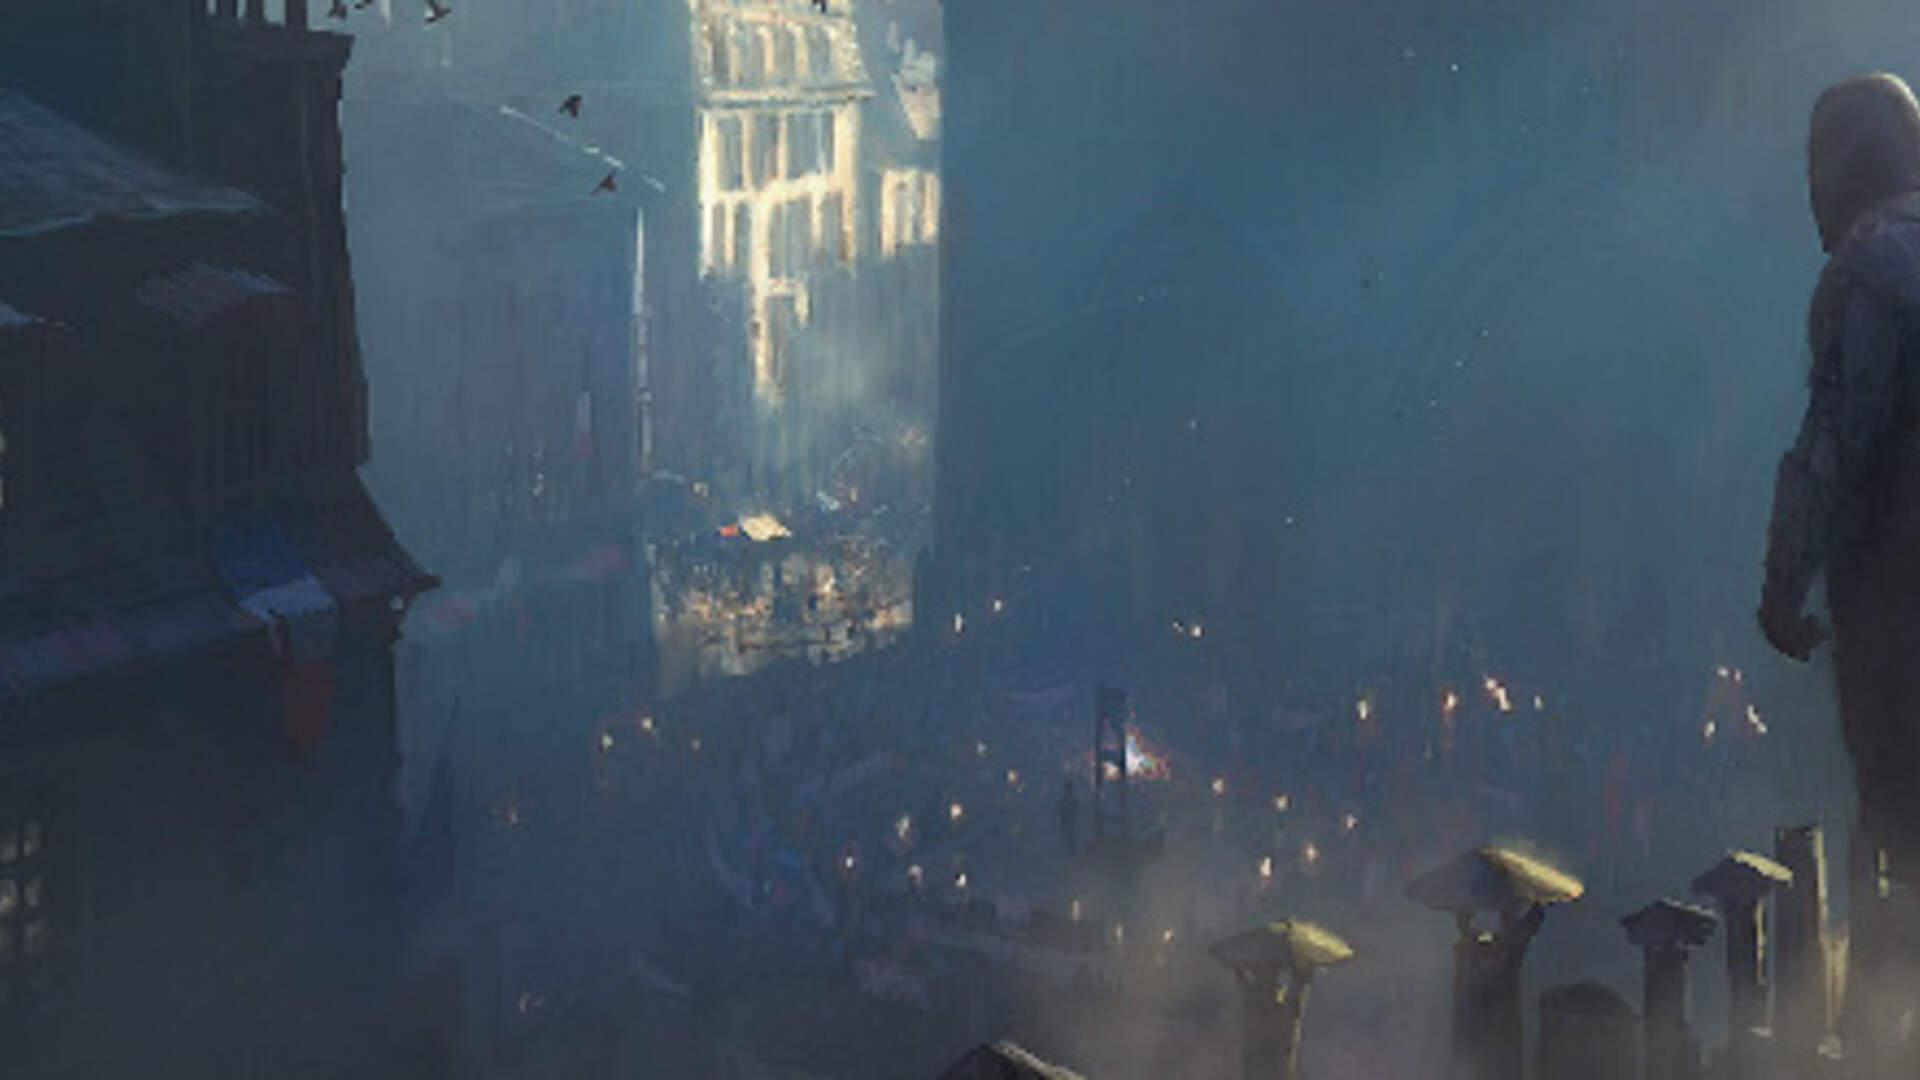 Assassin's Creed Unity Video Preview: Now With Mike's Voice